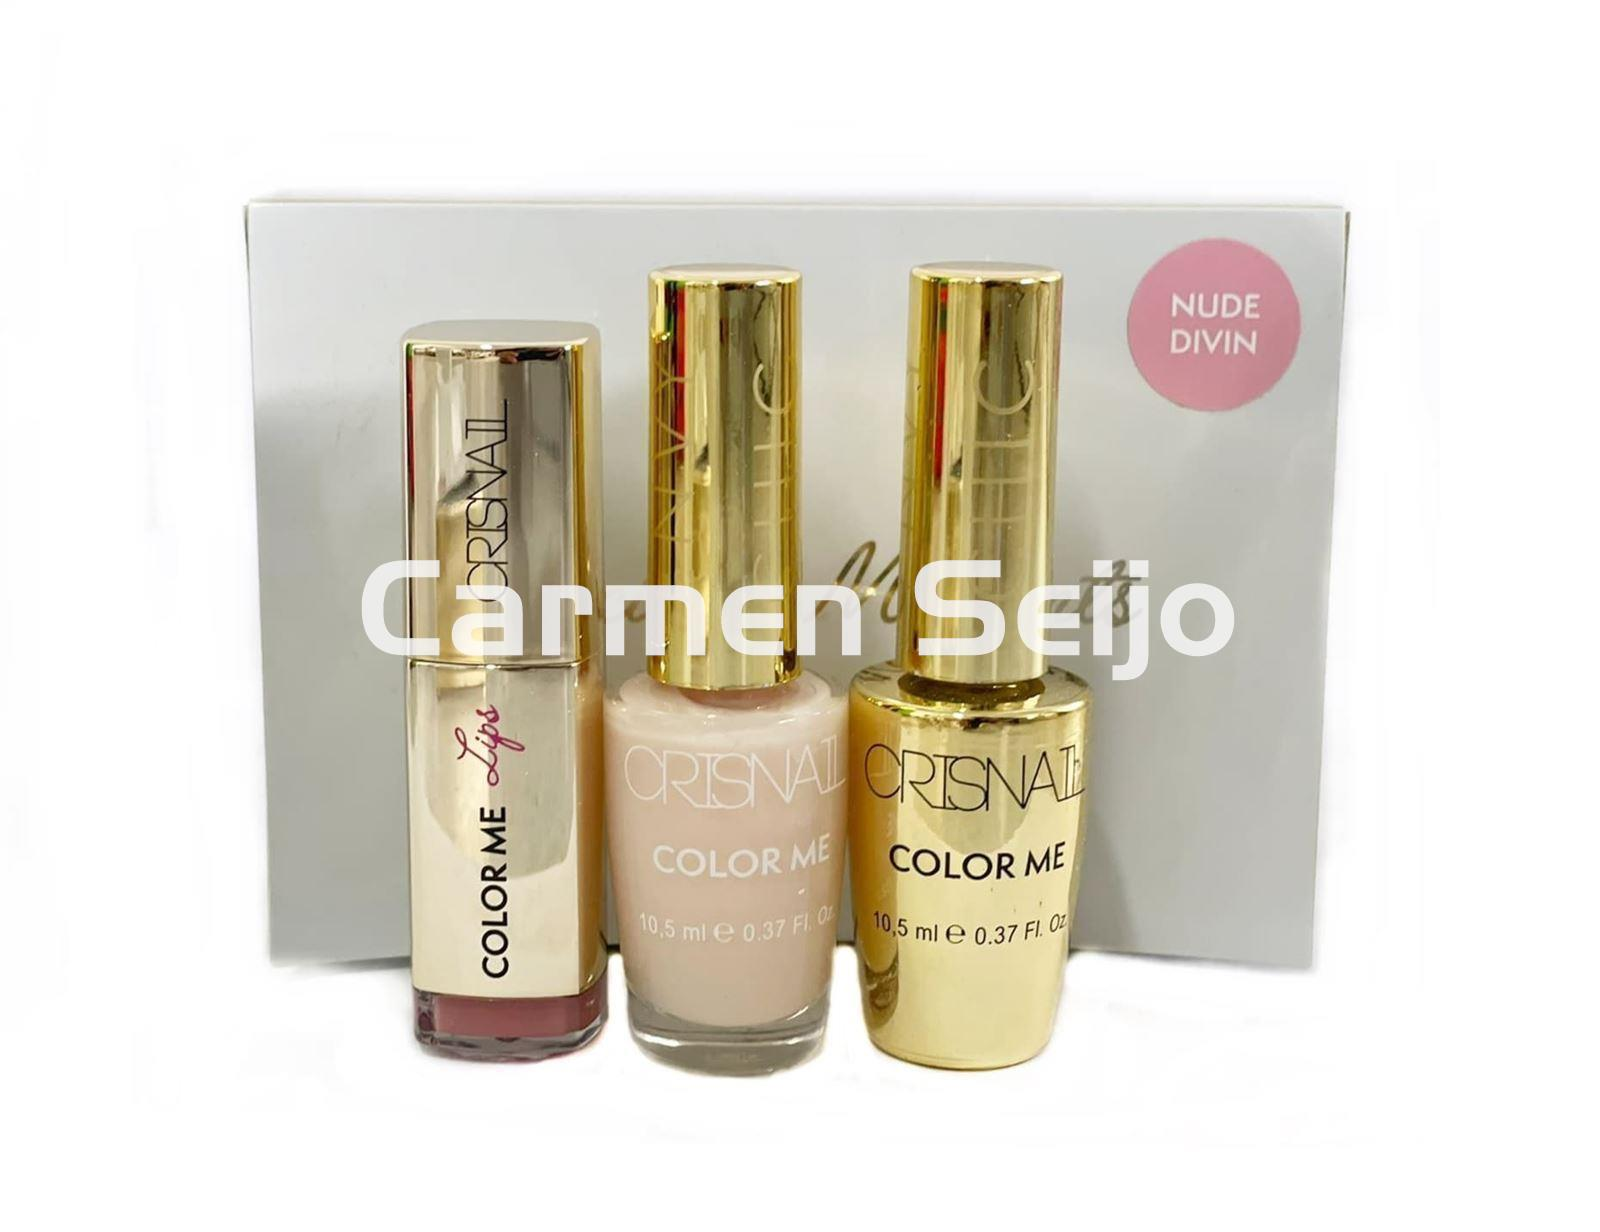 Crisnail Box Cofre Sublime Nude Divin Cristal French Color Me - Imagen 1